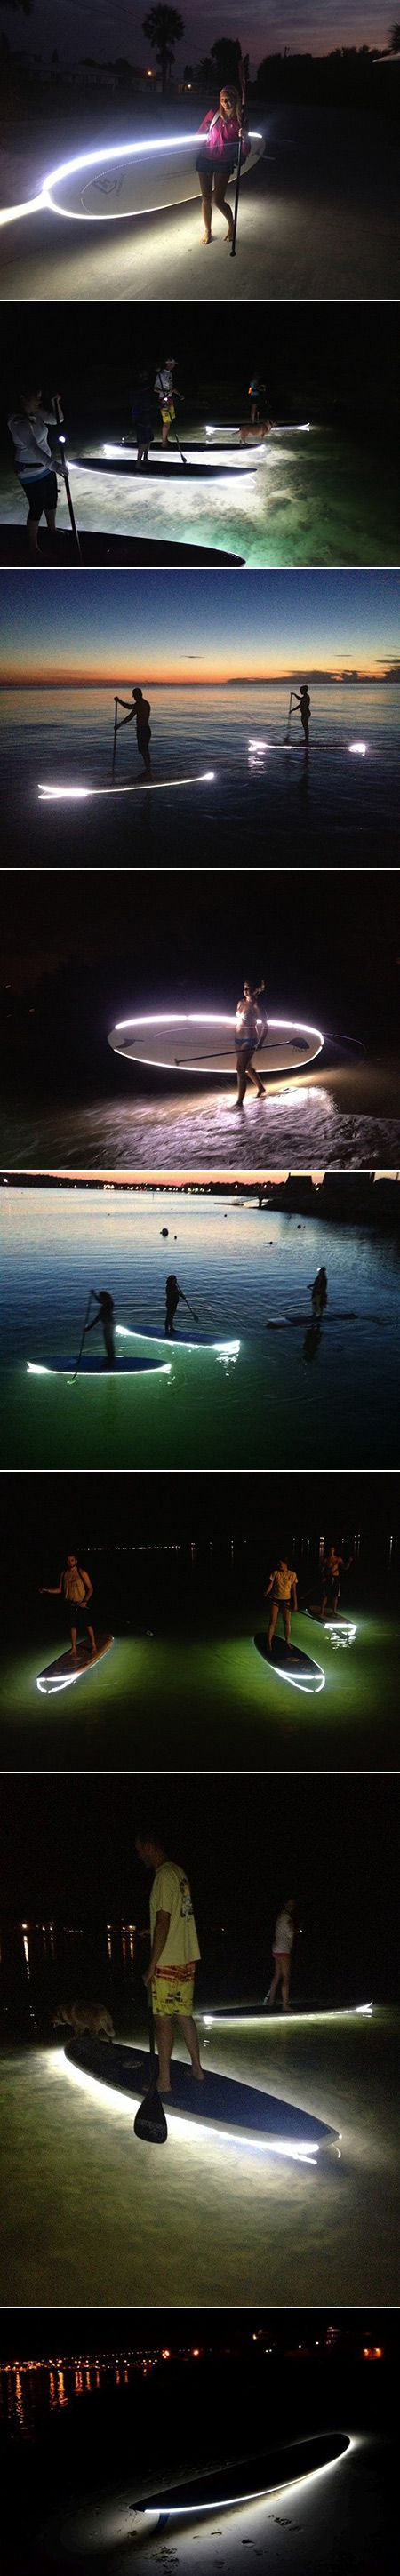 An accessory for paddle boards to make them safer to use at night. By attaching a custom-made, permanent strip of LED lights around the border of a board, surfers are given a source of light to guide them at night and illuminate the ocean floor below them. Repinned by Wondrous http://www.wondrous.com.au